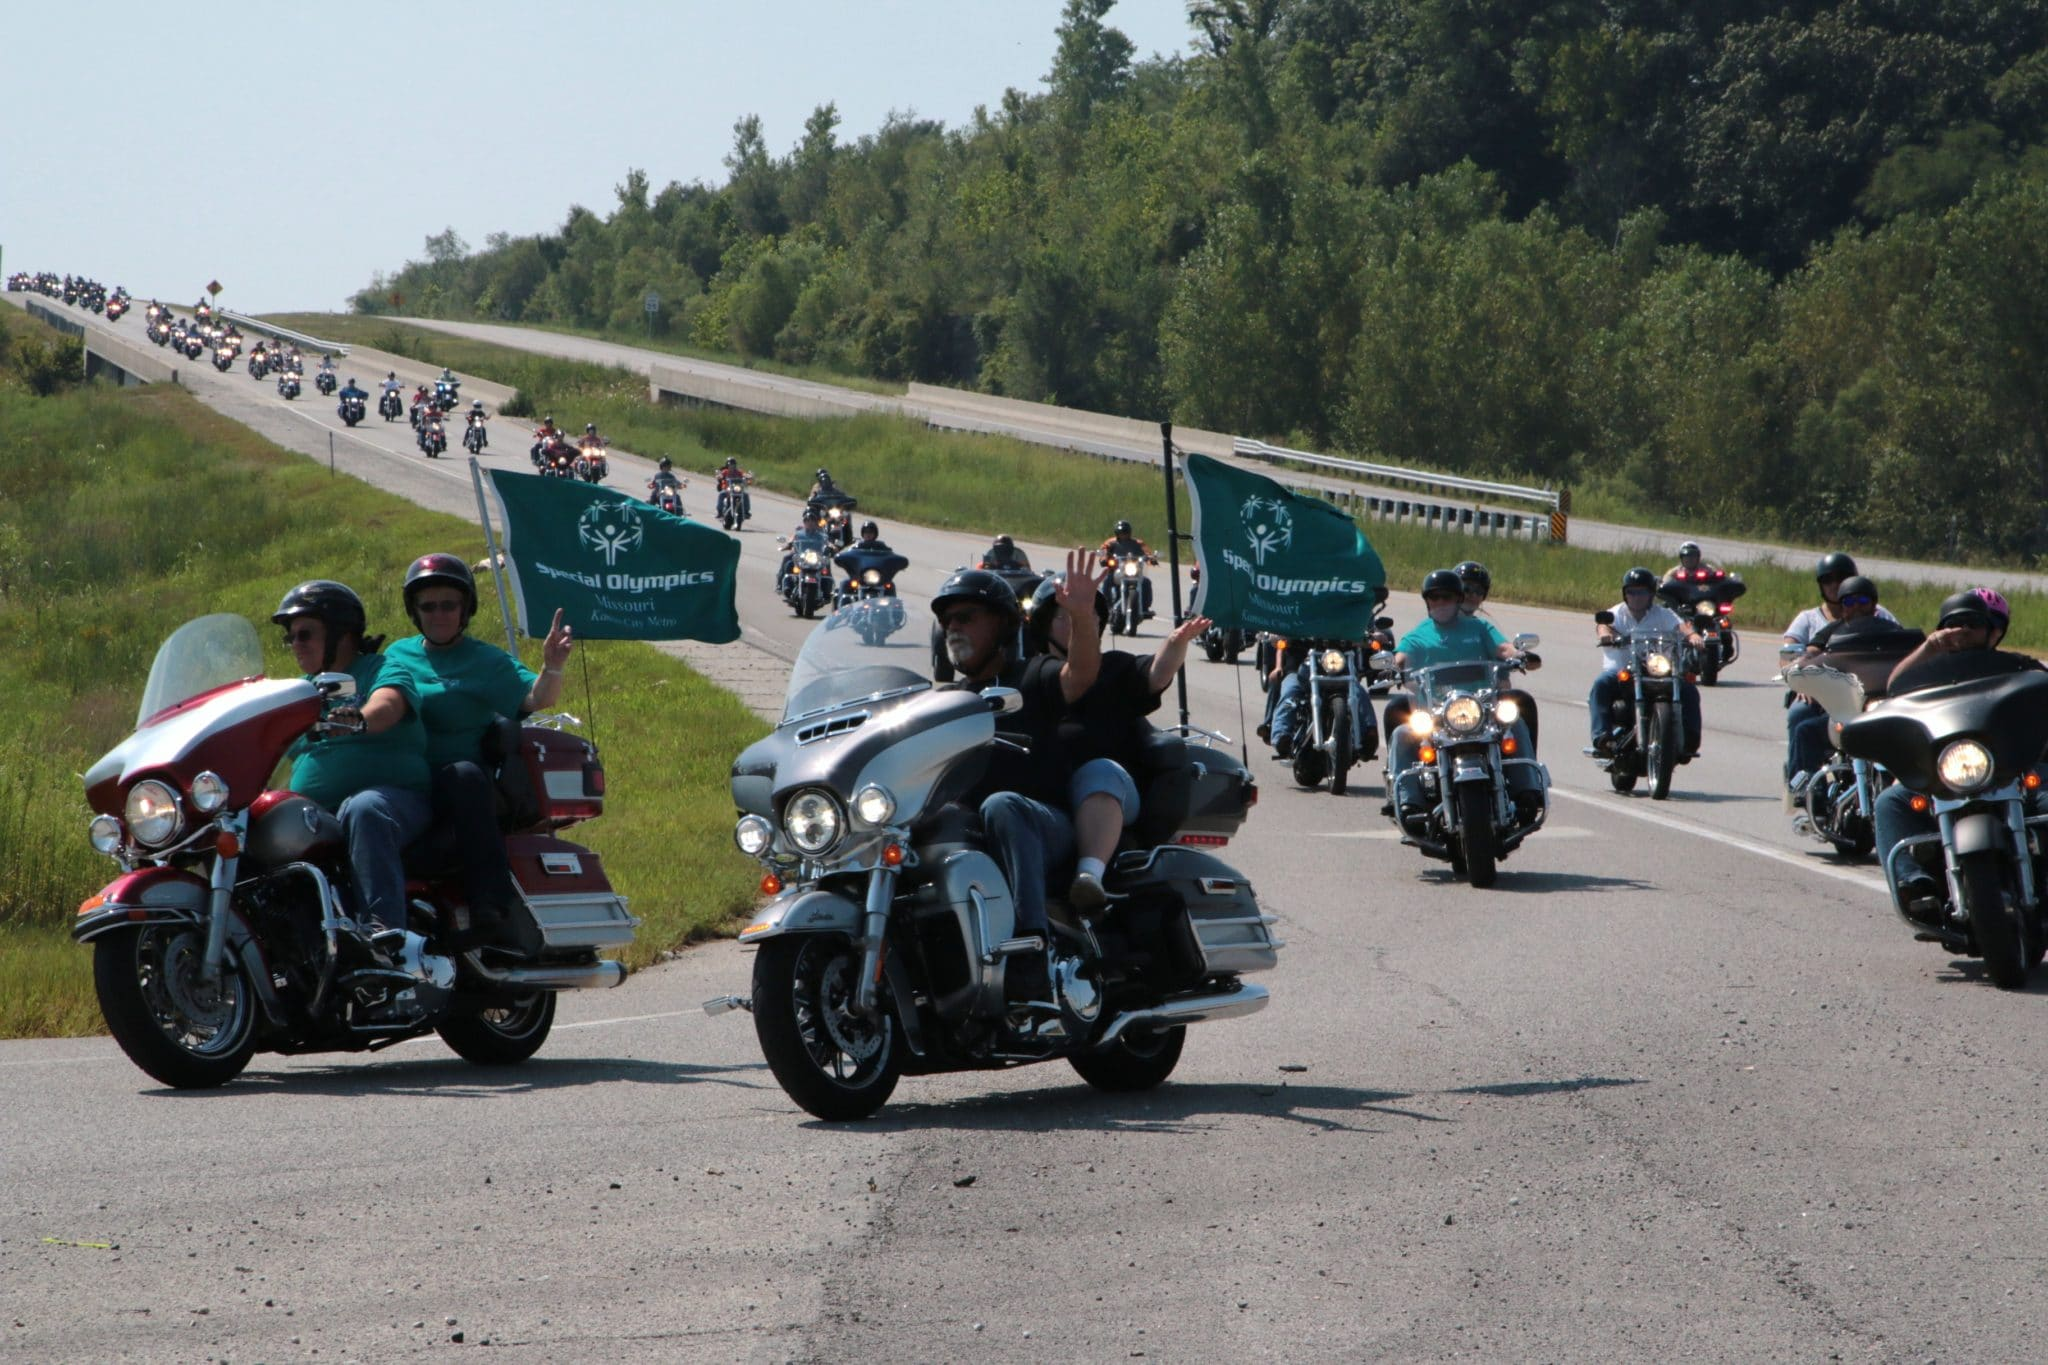 A group of more than 50 motorcycles, some with SOMO flags waving in the wind, travel down the street